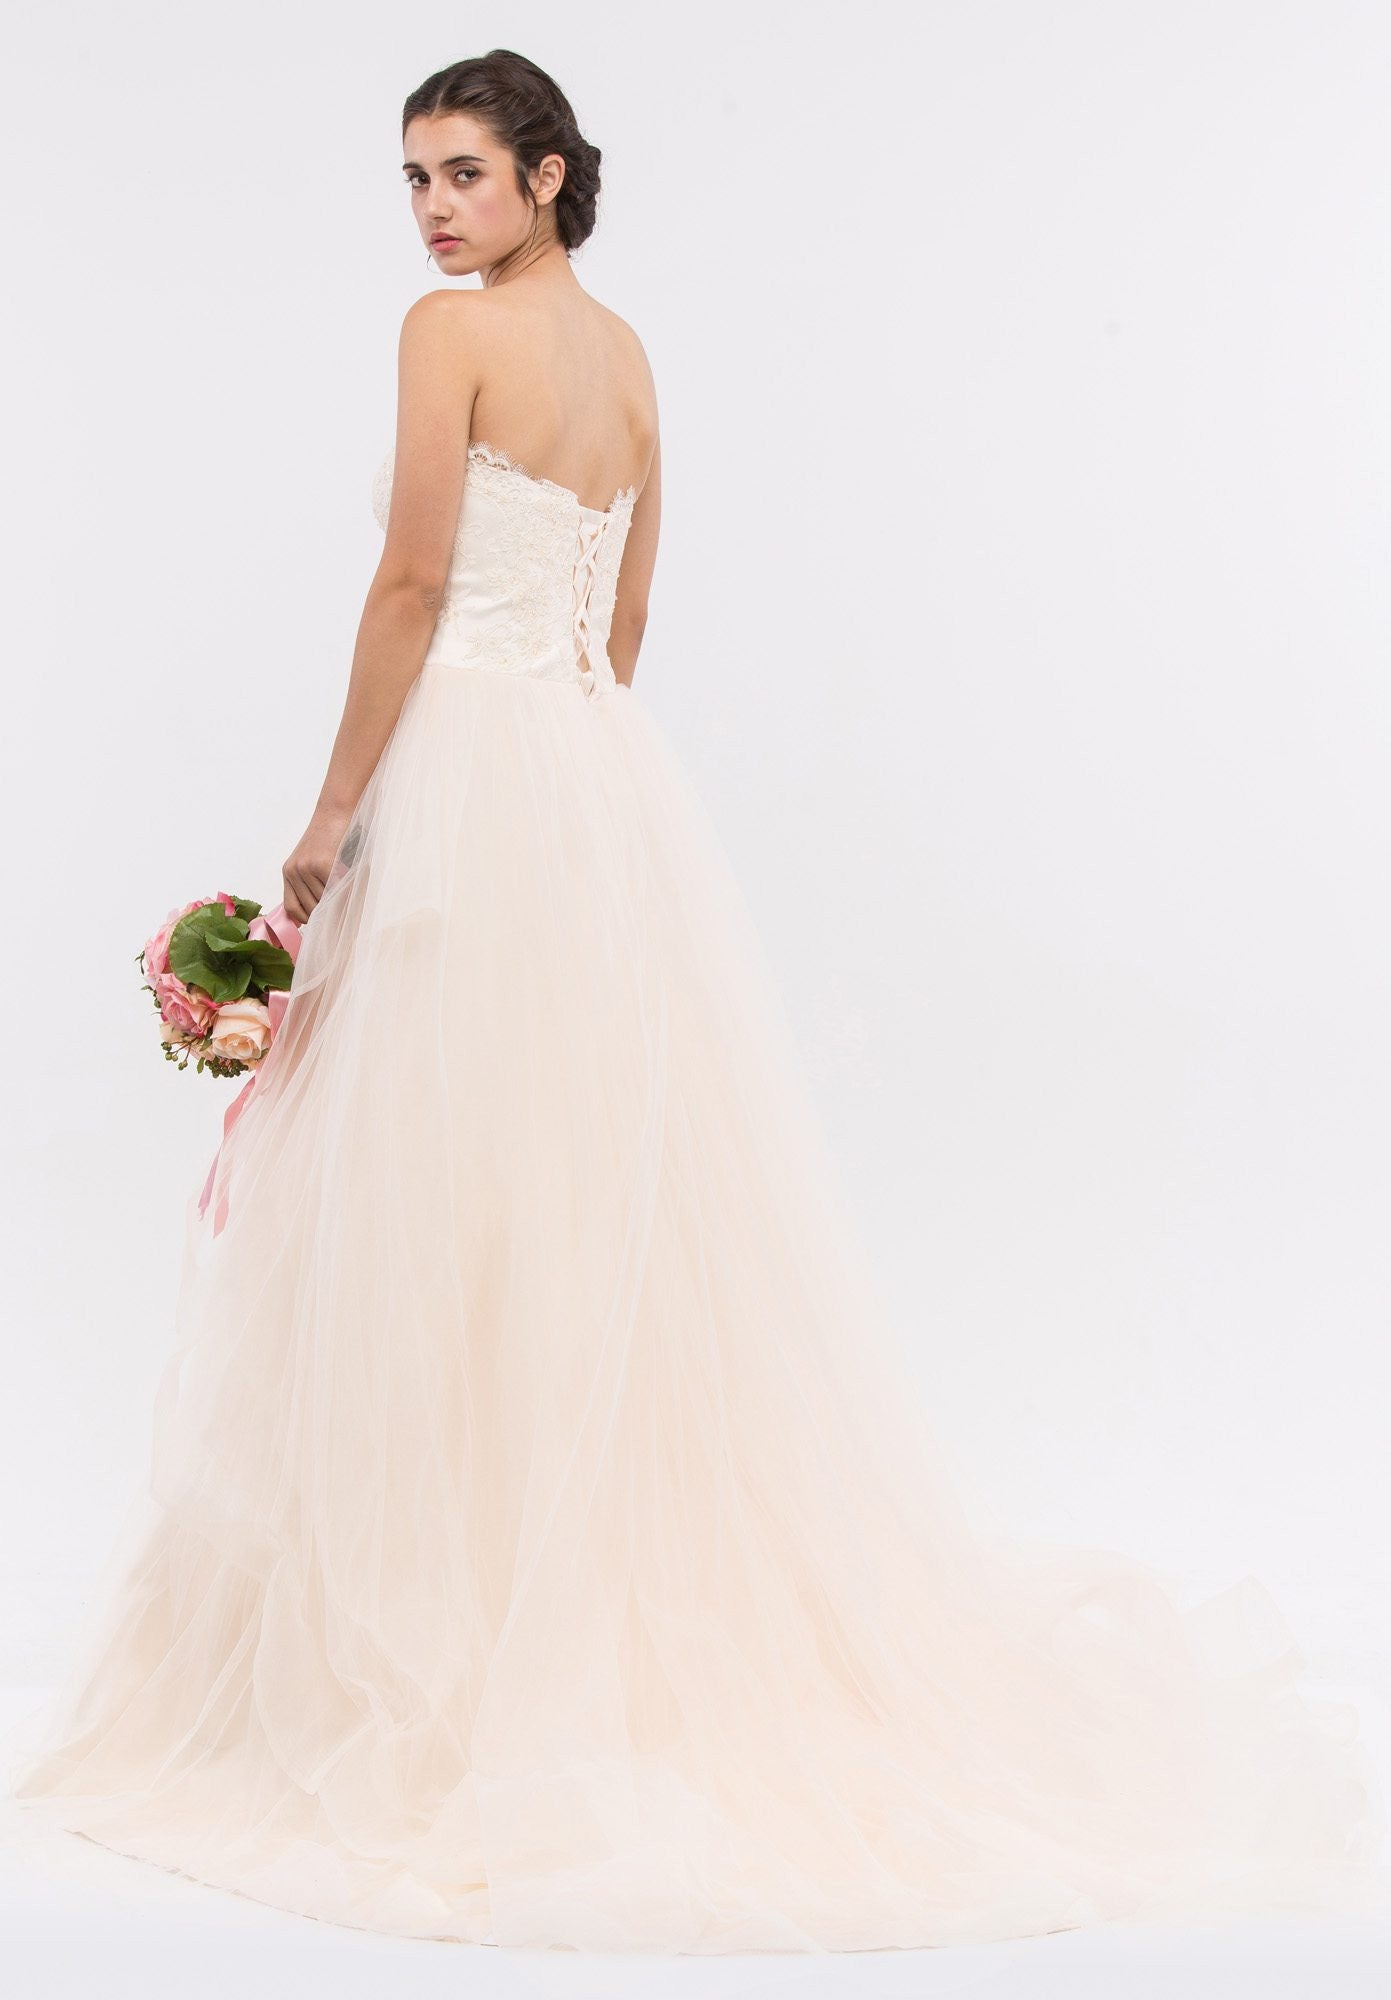 Strapless Sweetheart Neckline Embellished Wedding Gown Champagne ...